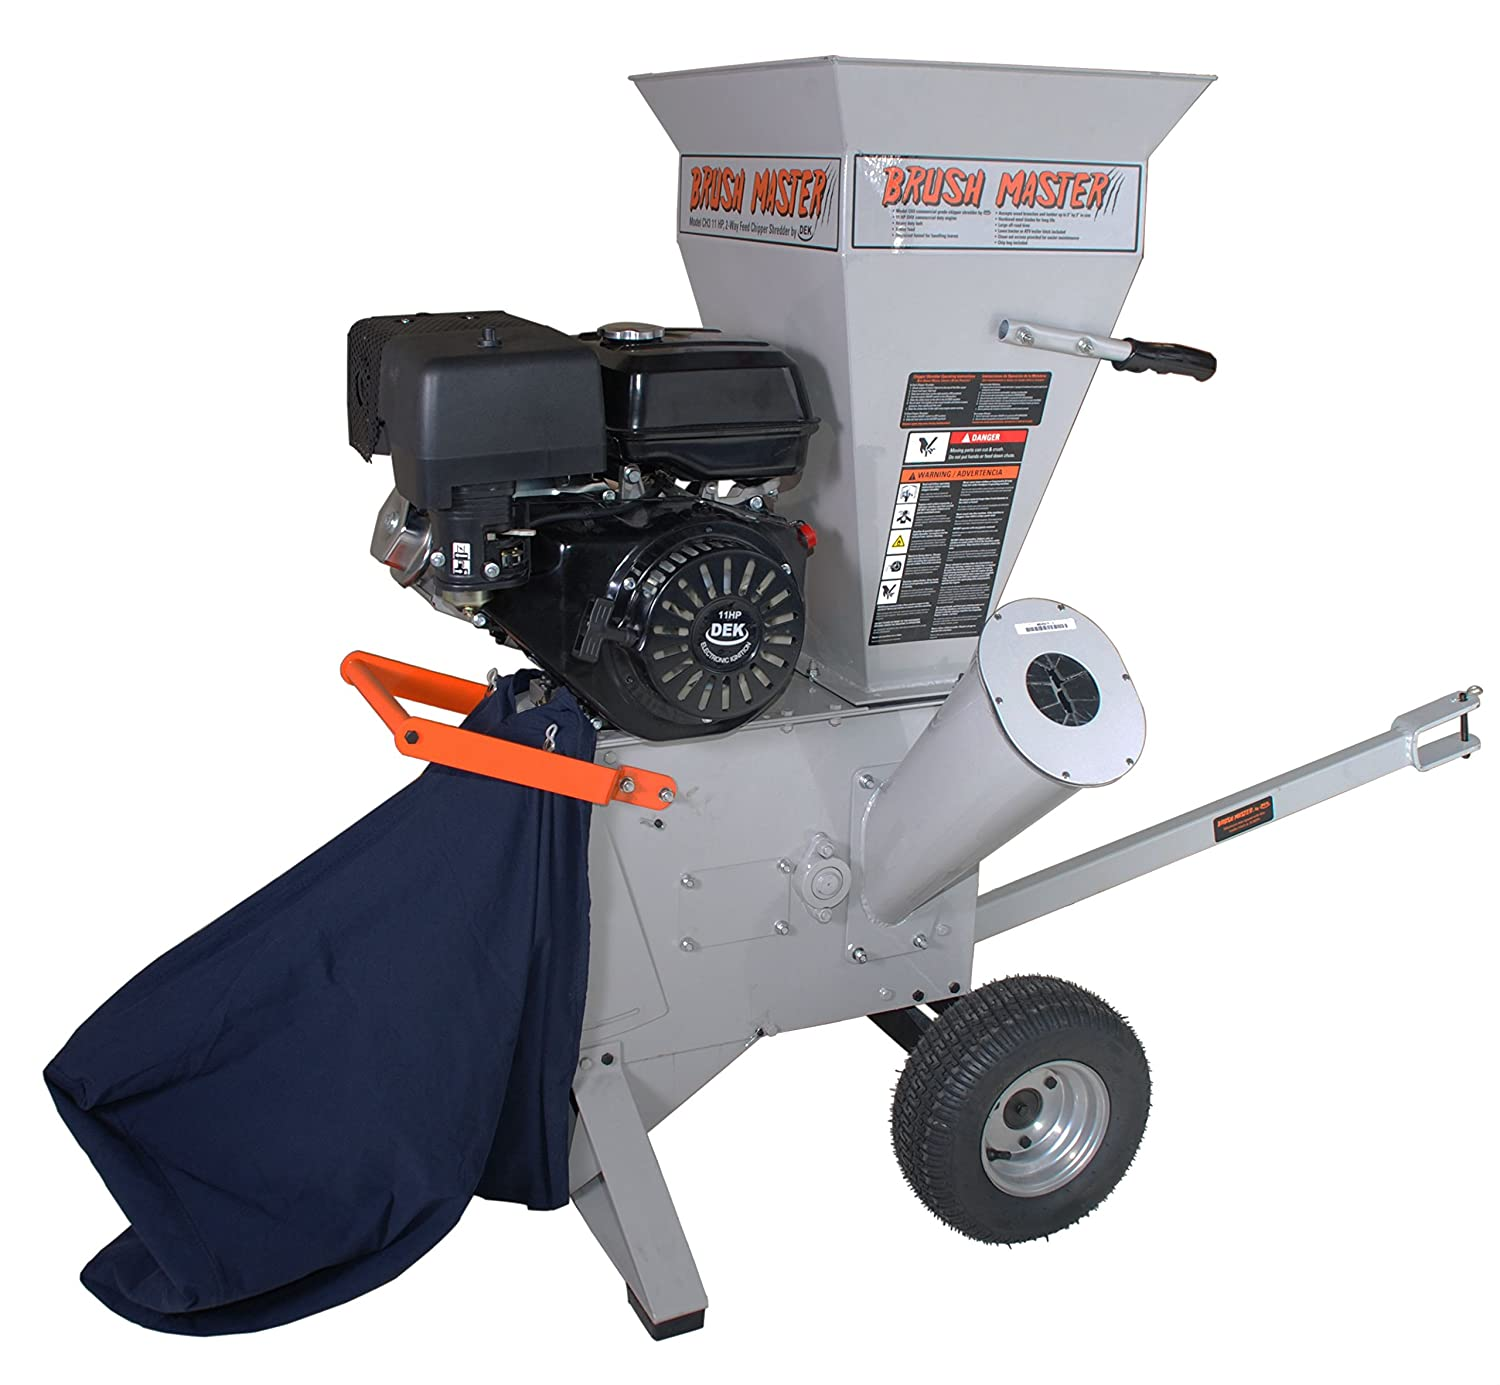 brush master chipper shredder reviews